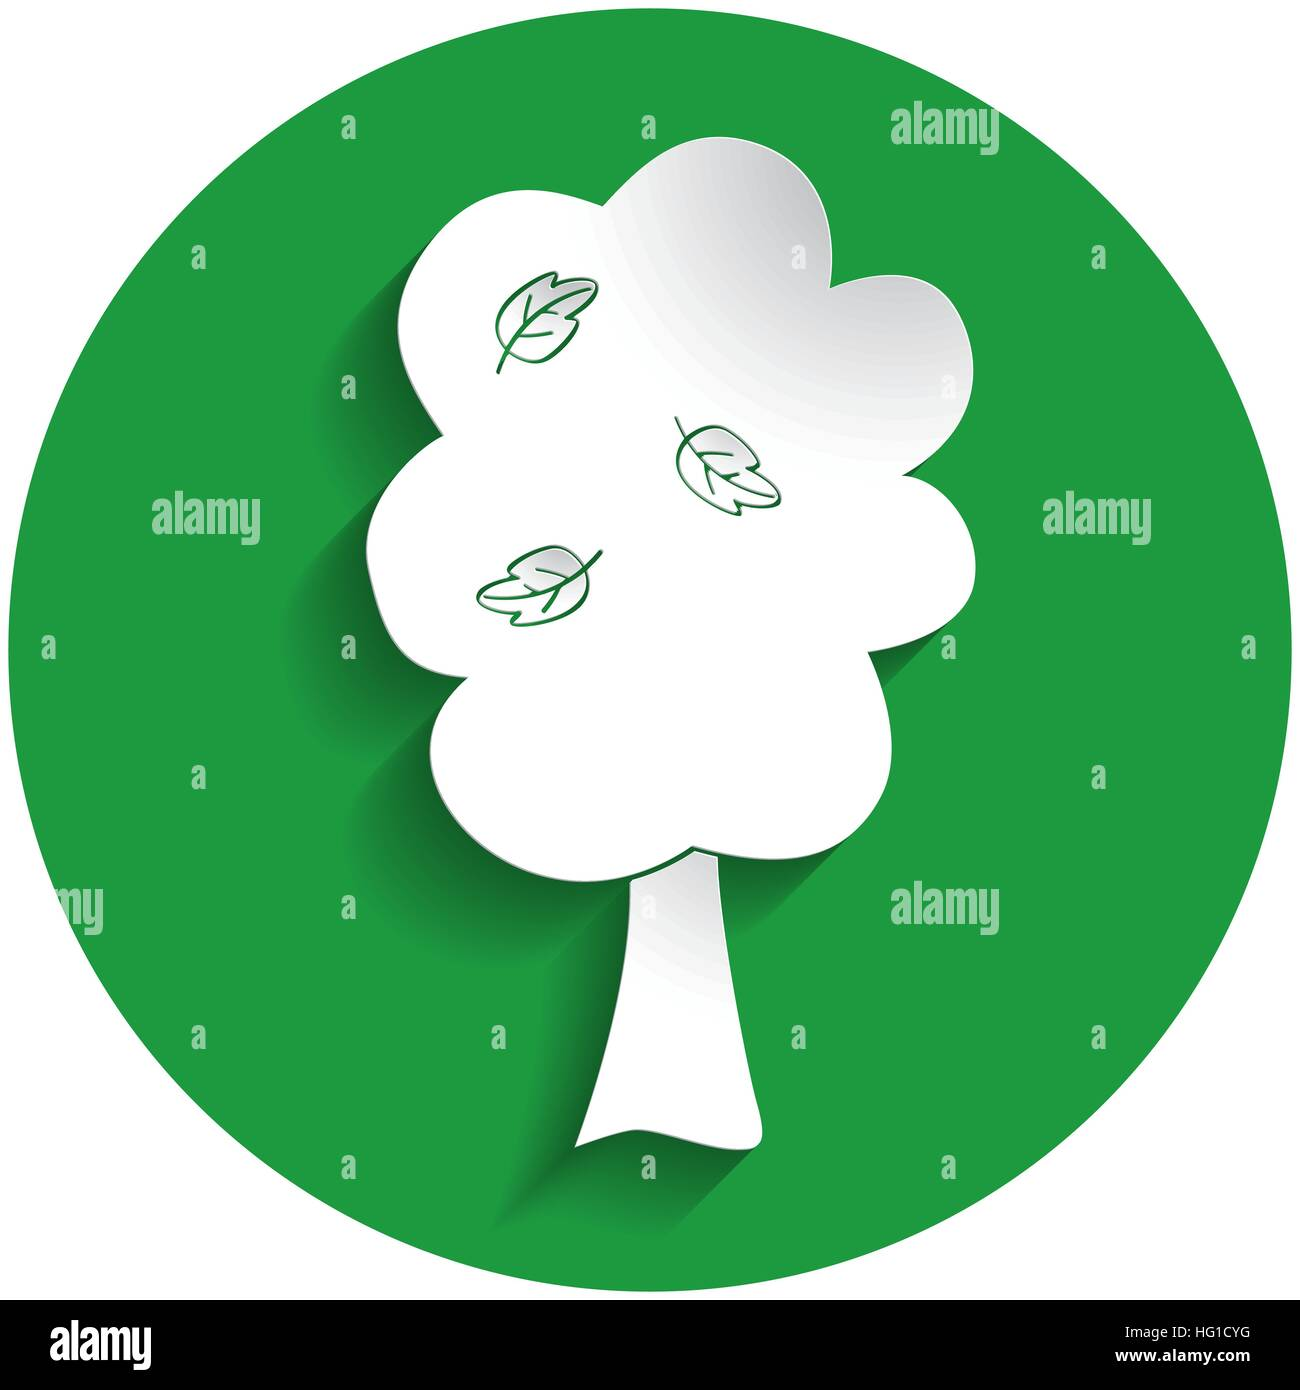 Fruit tree icon in paper style on green circle - Stock Vector